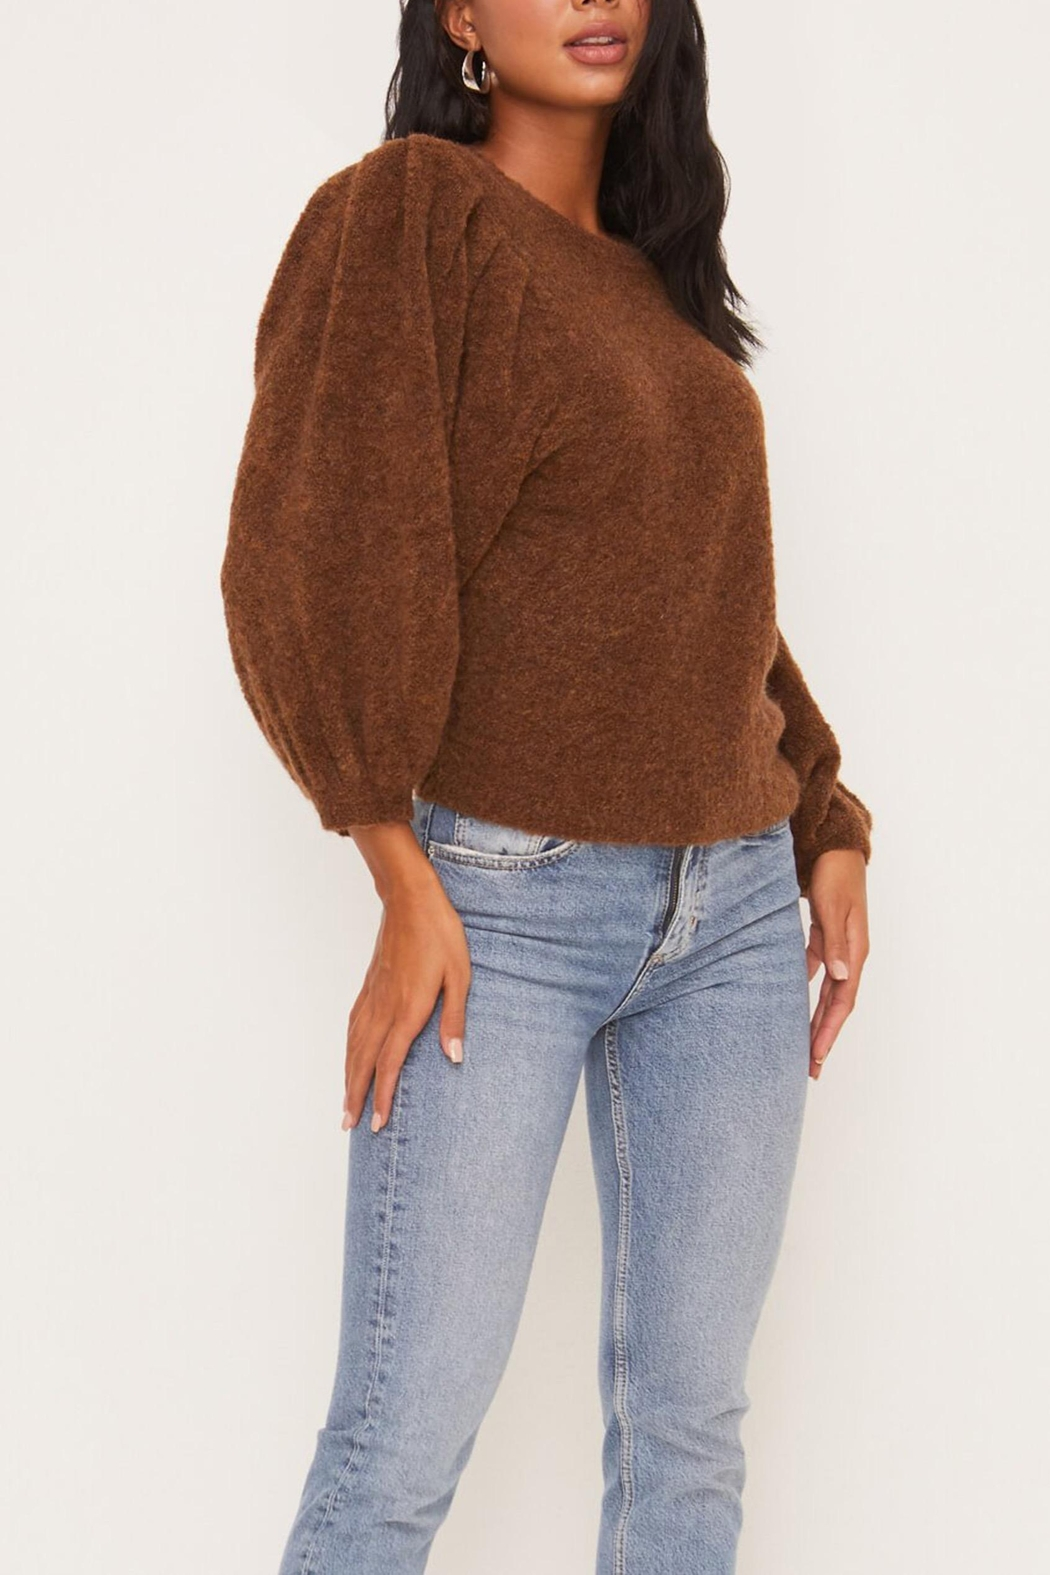 Lush Clothing  Brown Balloon-Sleeve Sweater - Side Cropped Image